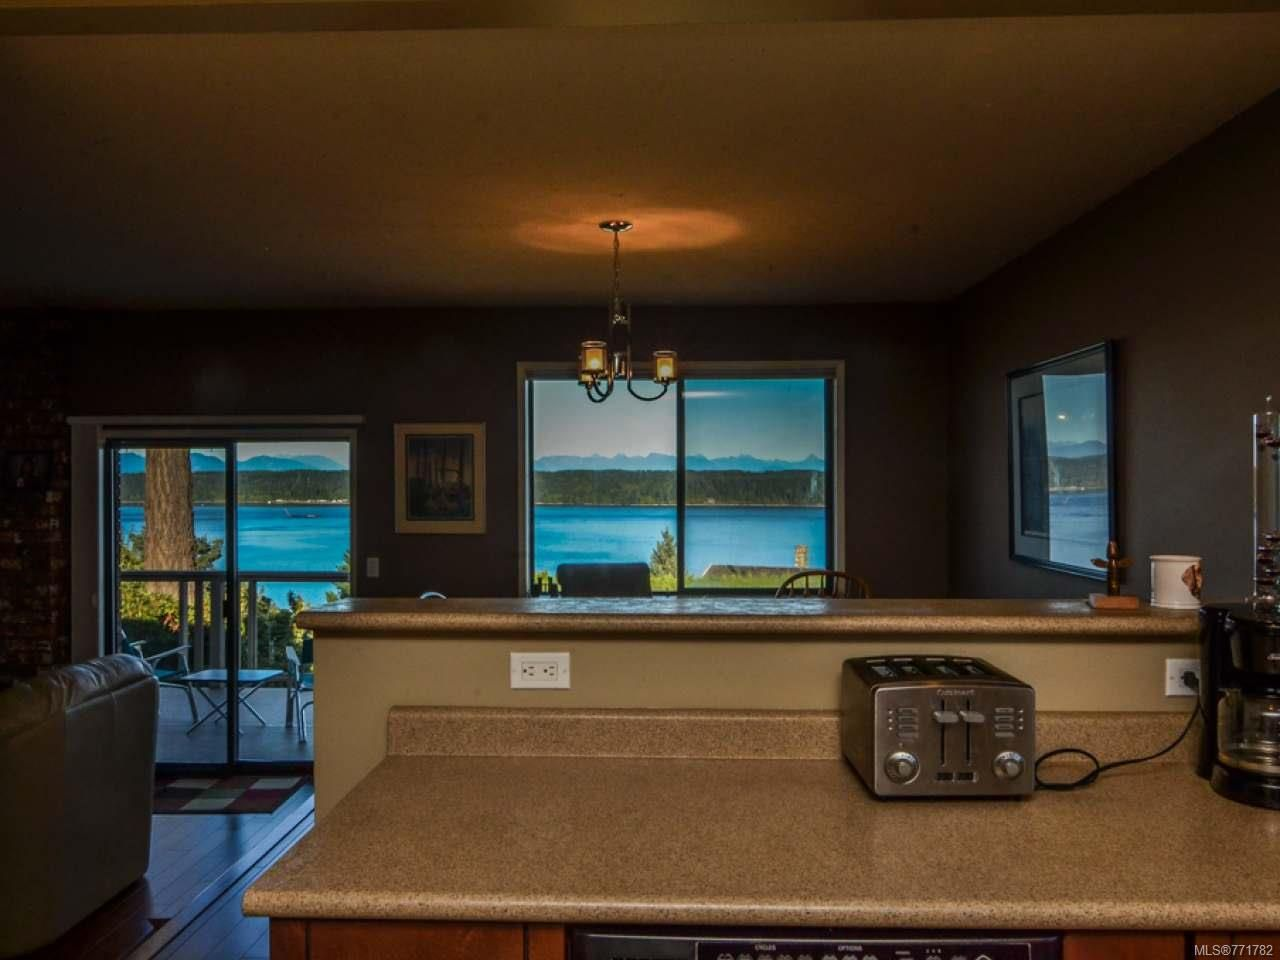 Photo 21: Photos: 451 S McLean St in CAMPBELL RIVER: CR Campbell River Central House for sale (Campbell River)  : MLS®# 771782